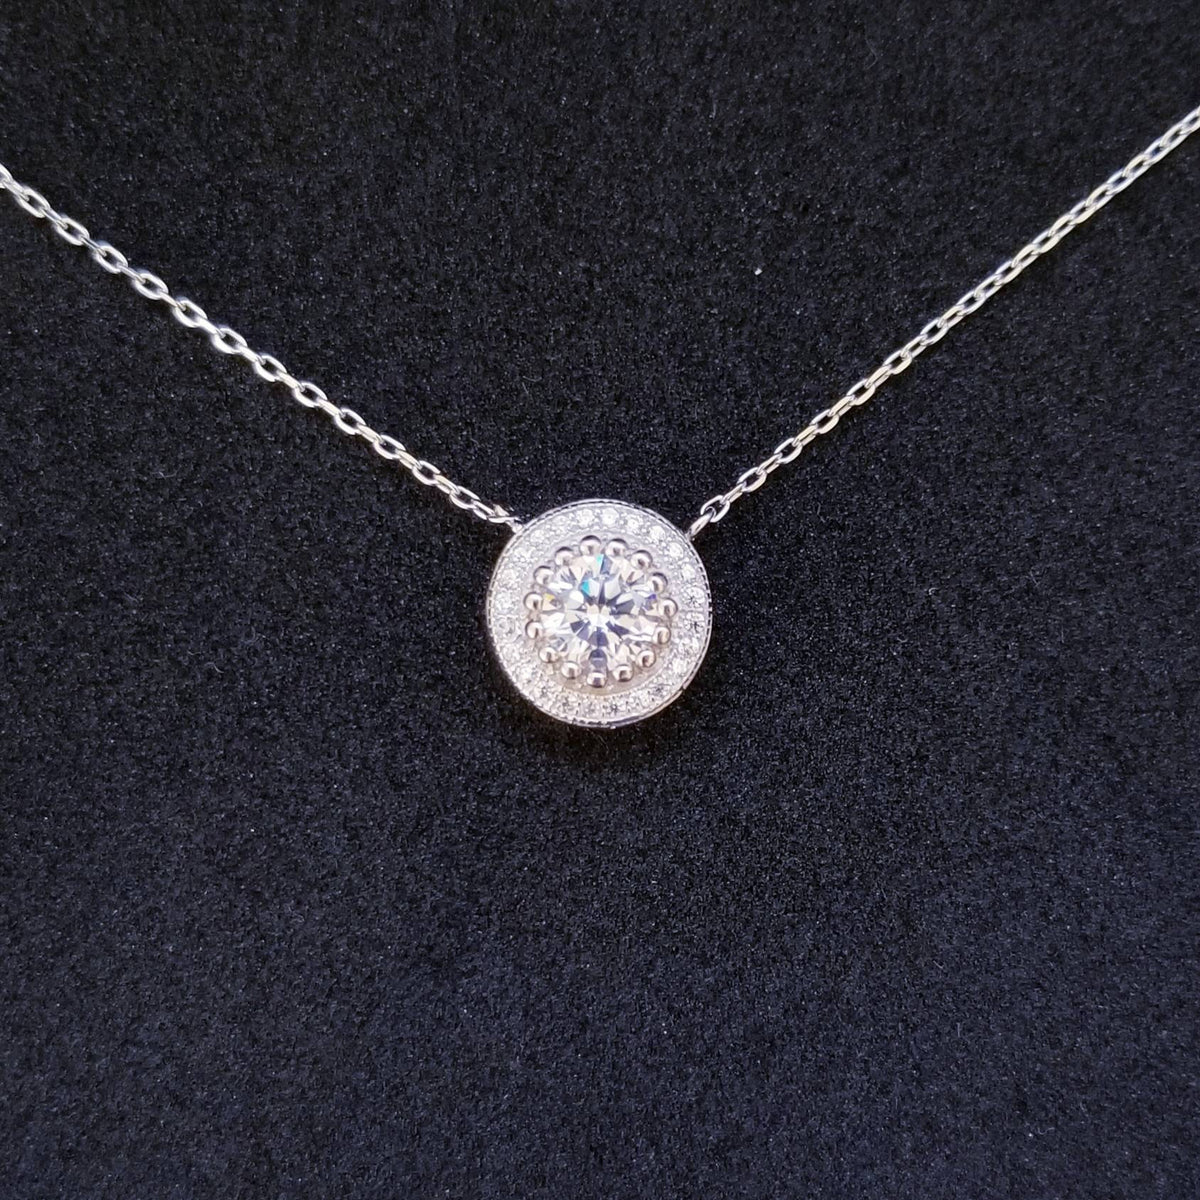 New 14k White Gold On 925 Sterling Silver Circular Crown CZ Stones Pendant